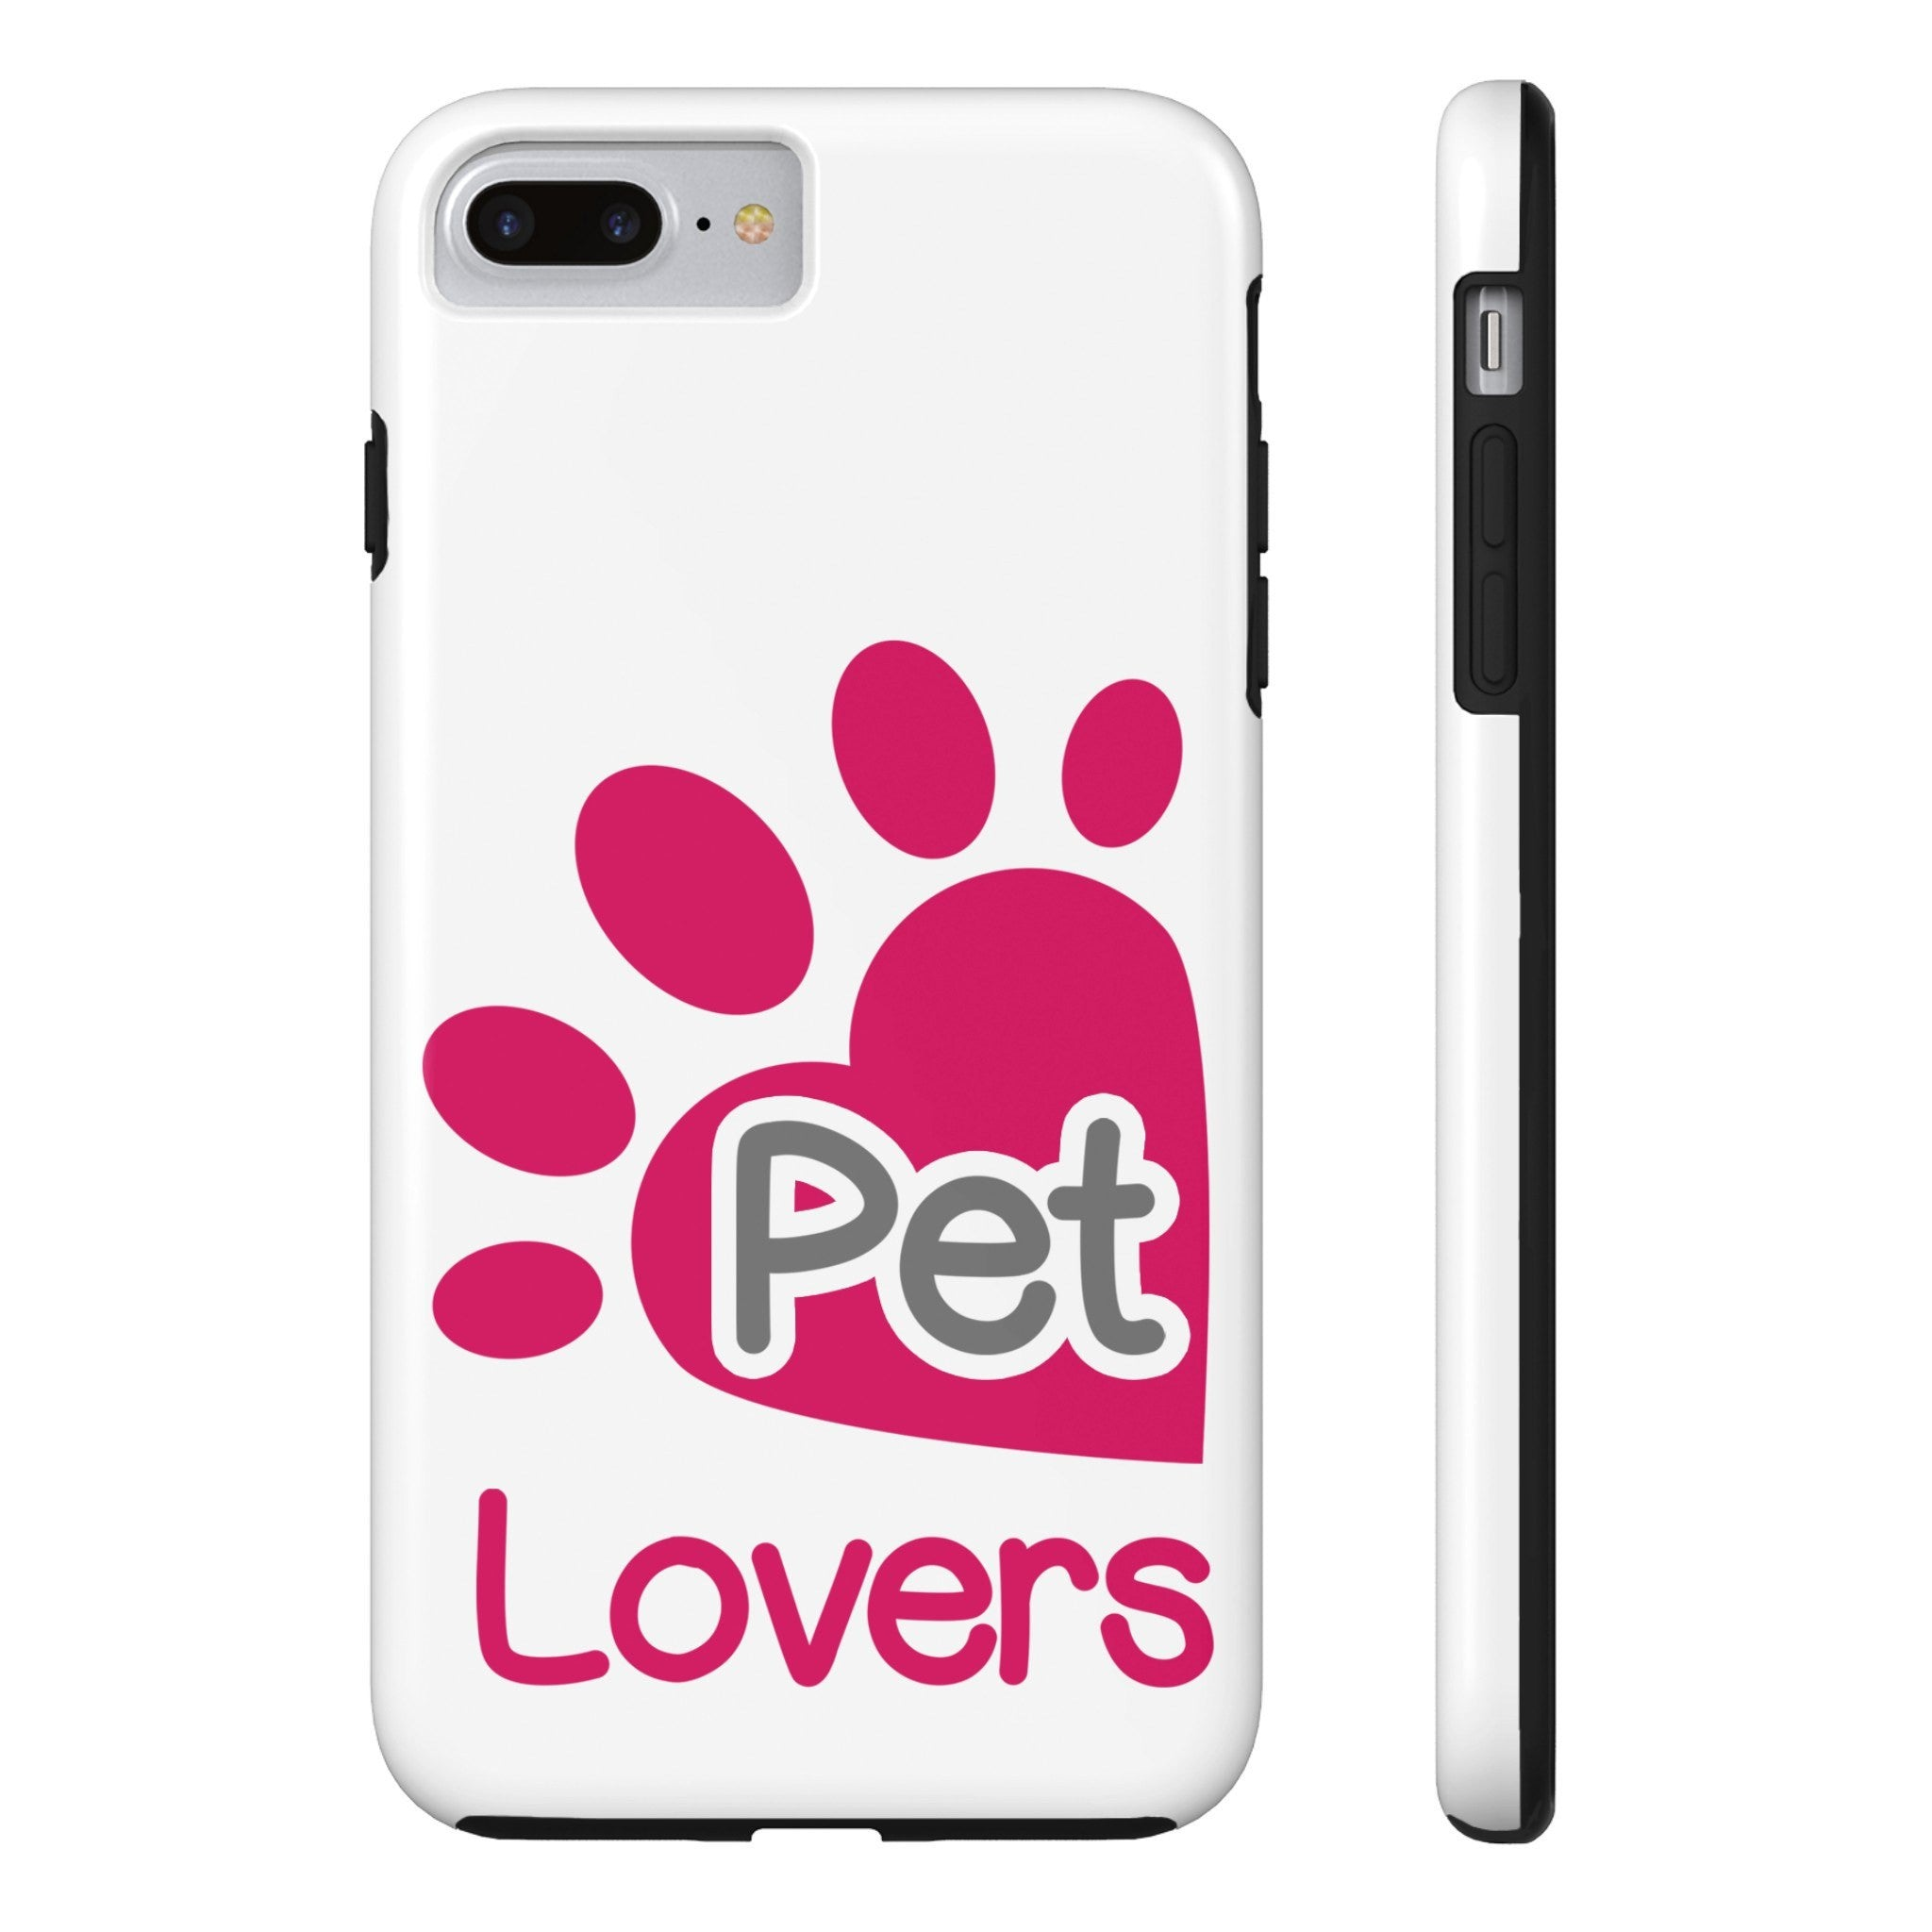 PetLovers All US Phone cases